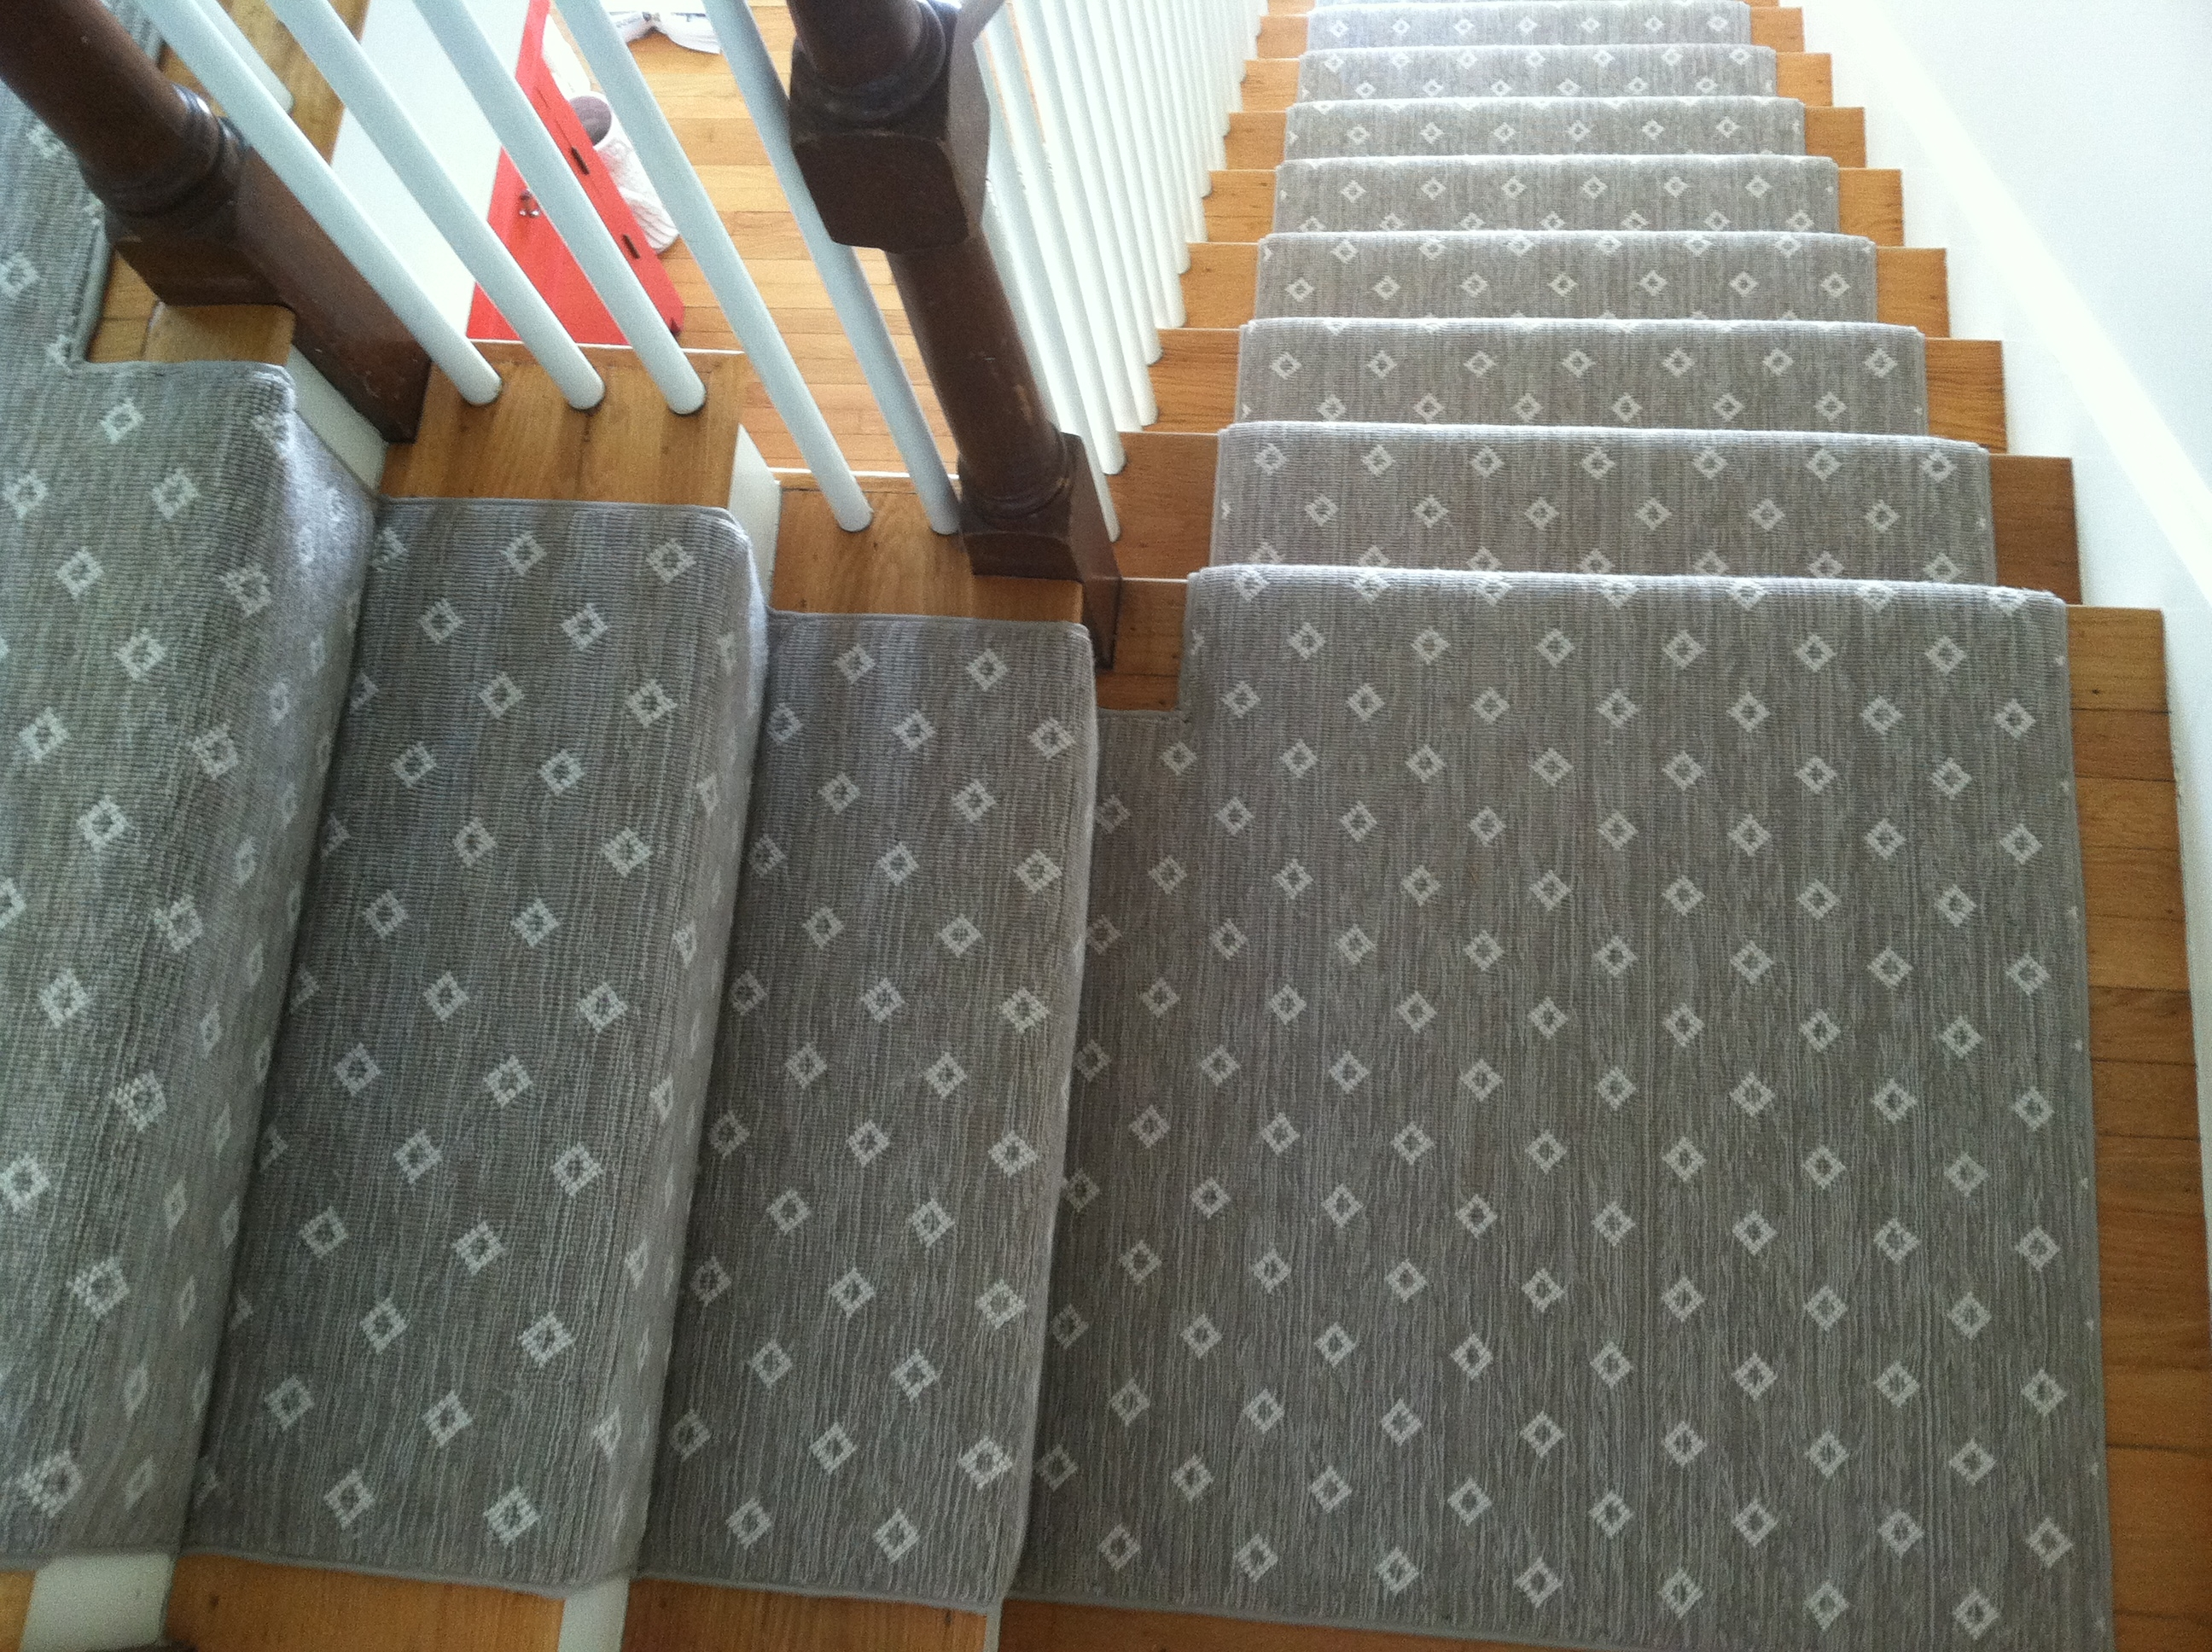 Patterned Carpet The Dos Donts Carpet Workroom | Grey Patterned Stair Carpet | Teal | Black | Farmhouse Style | Stair Landing | Wall